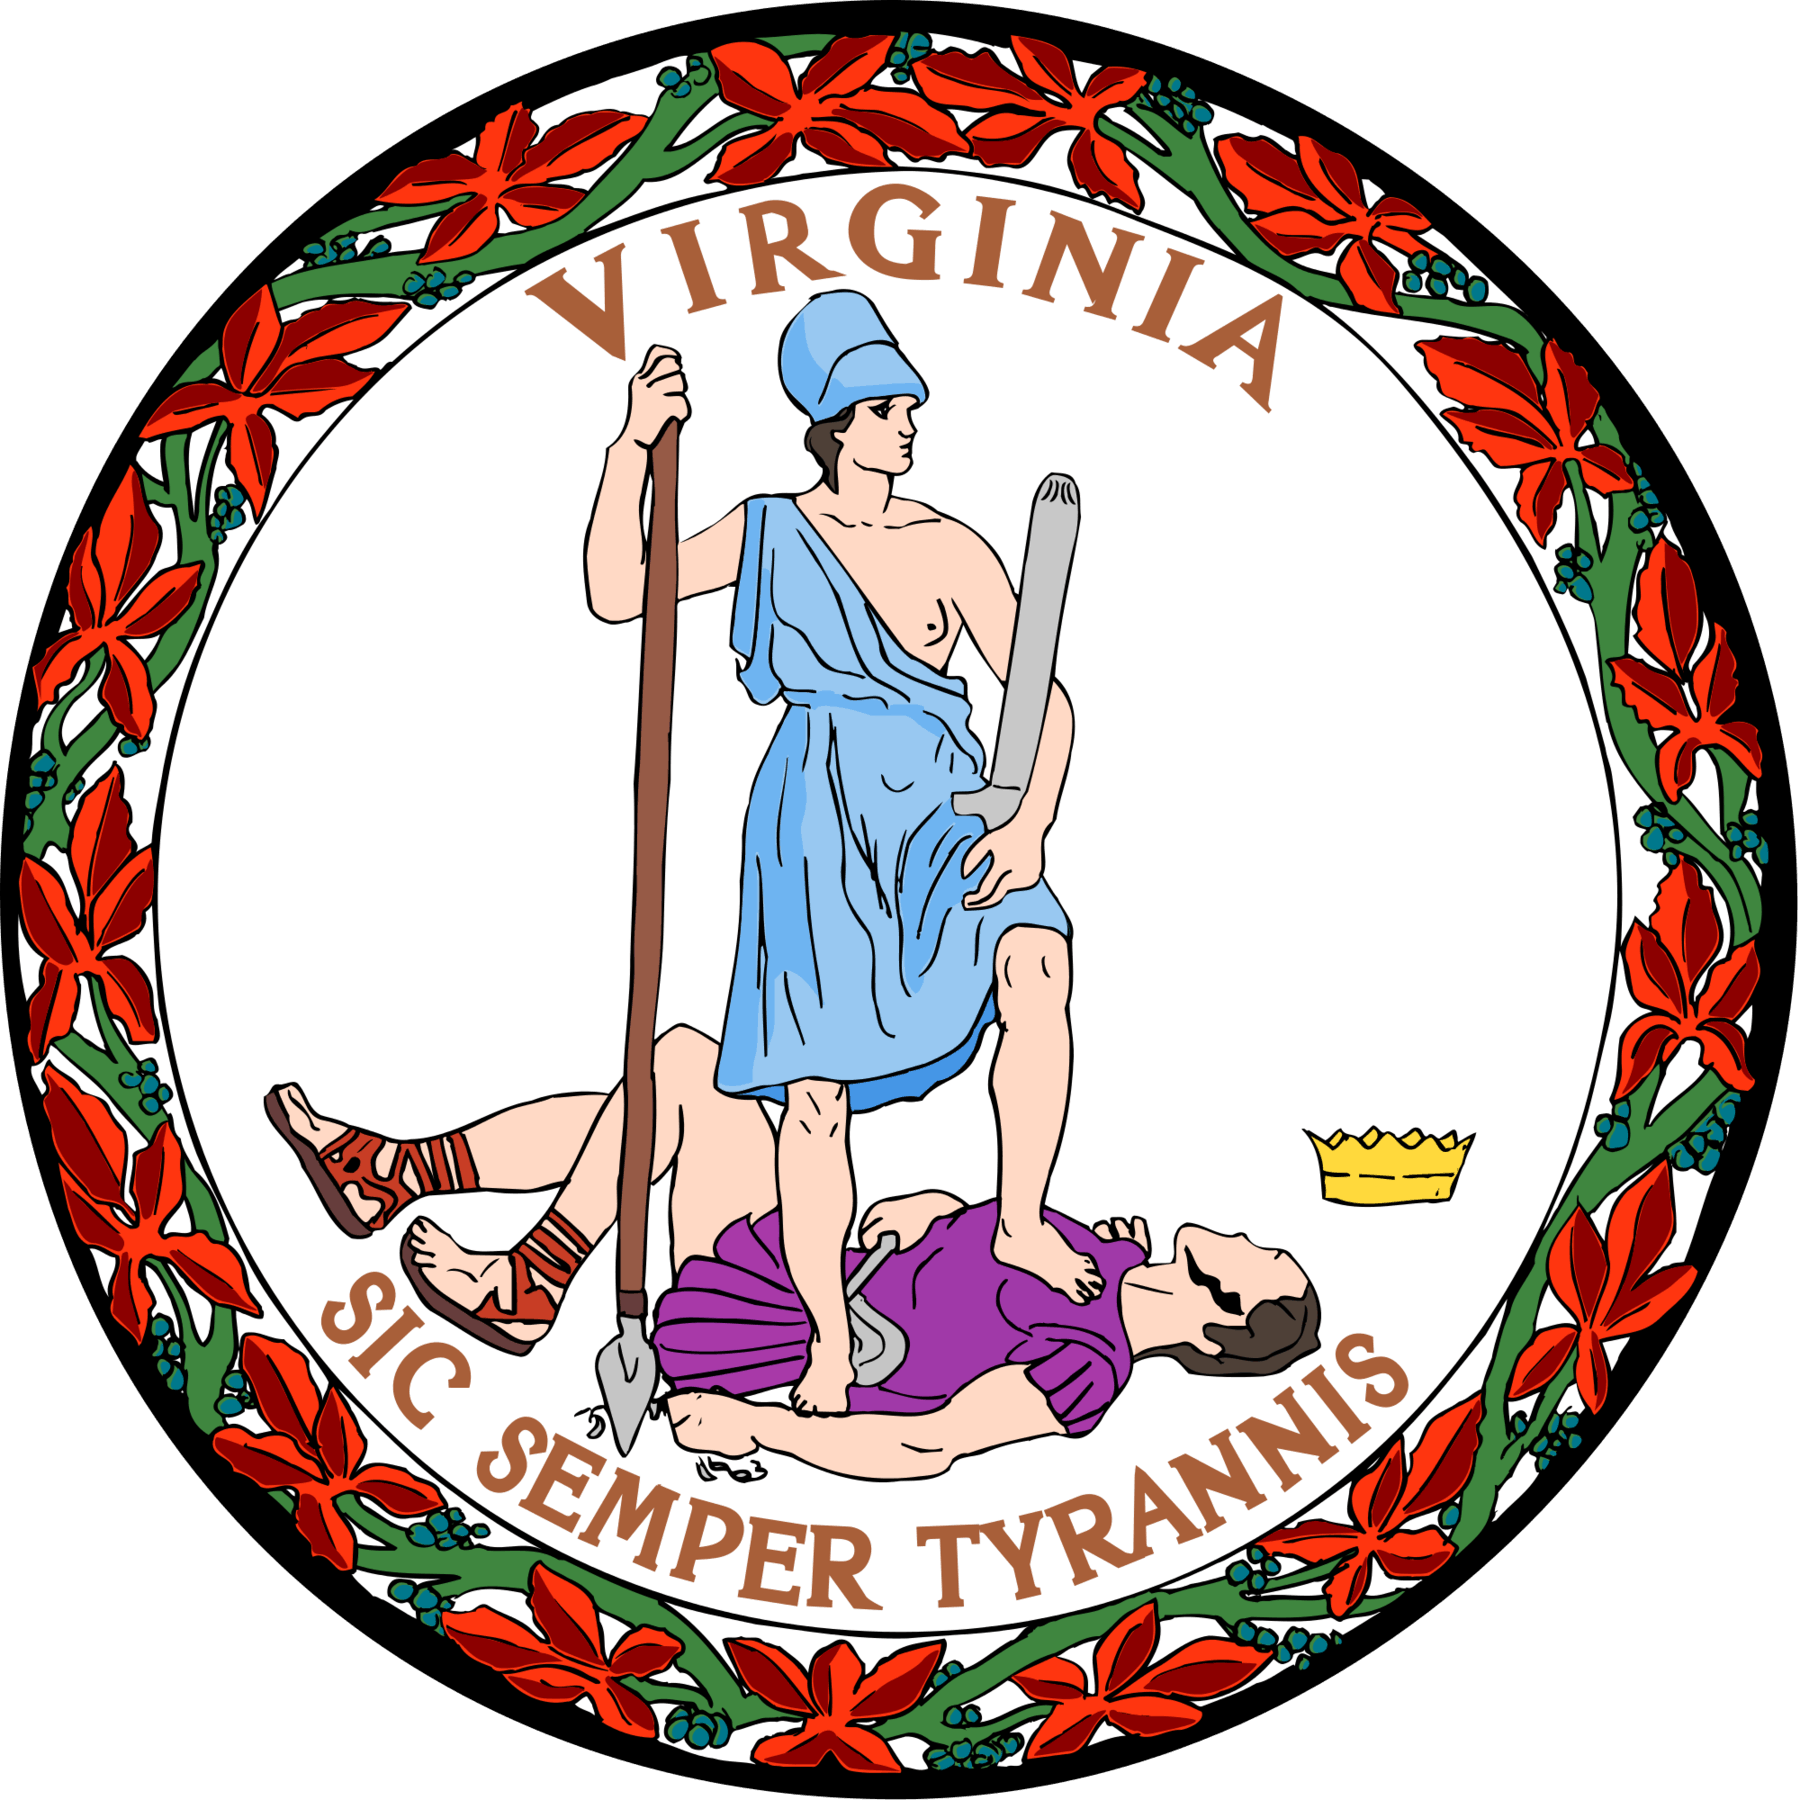 Finance clipart grant. Virginia student loan and